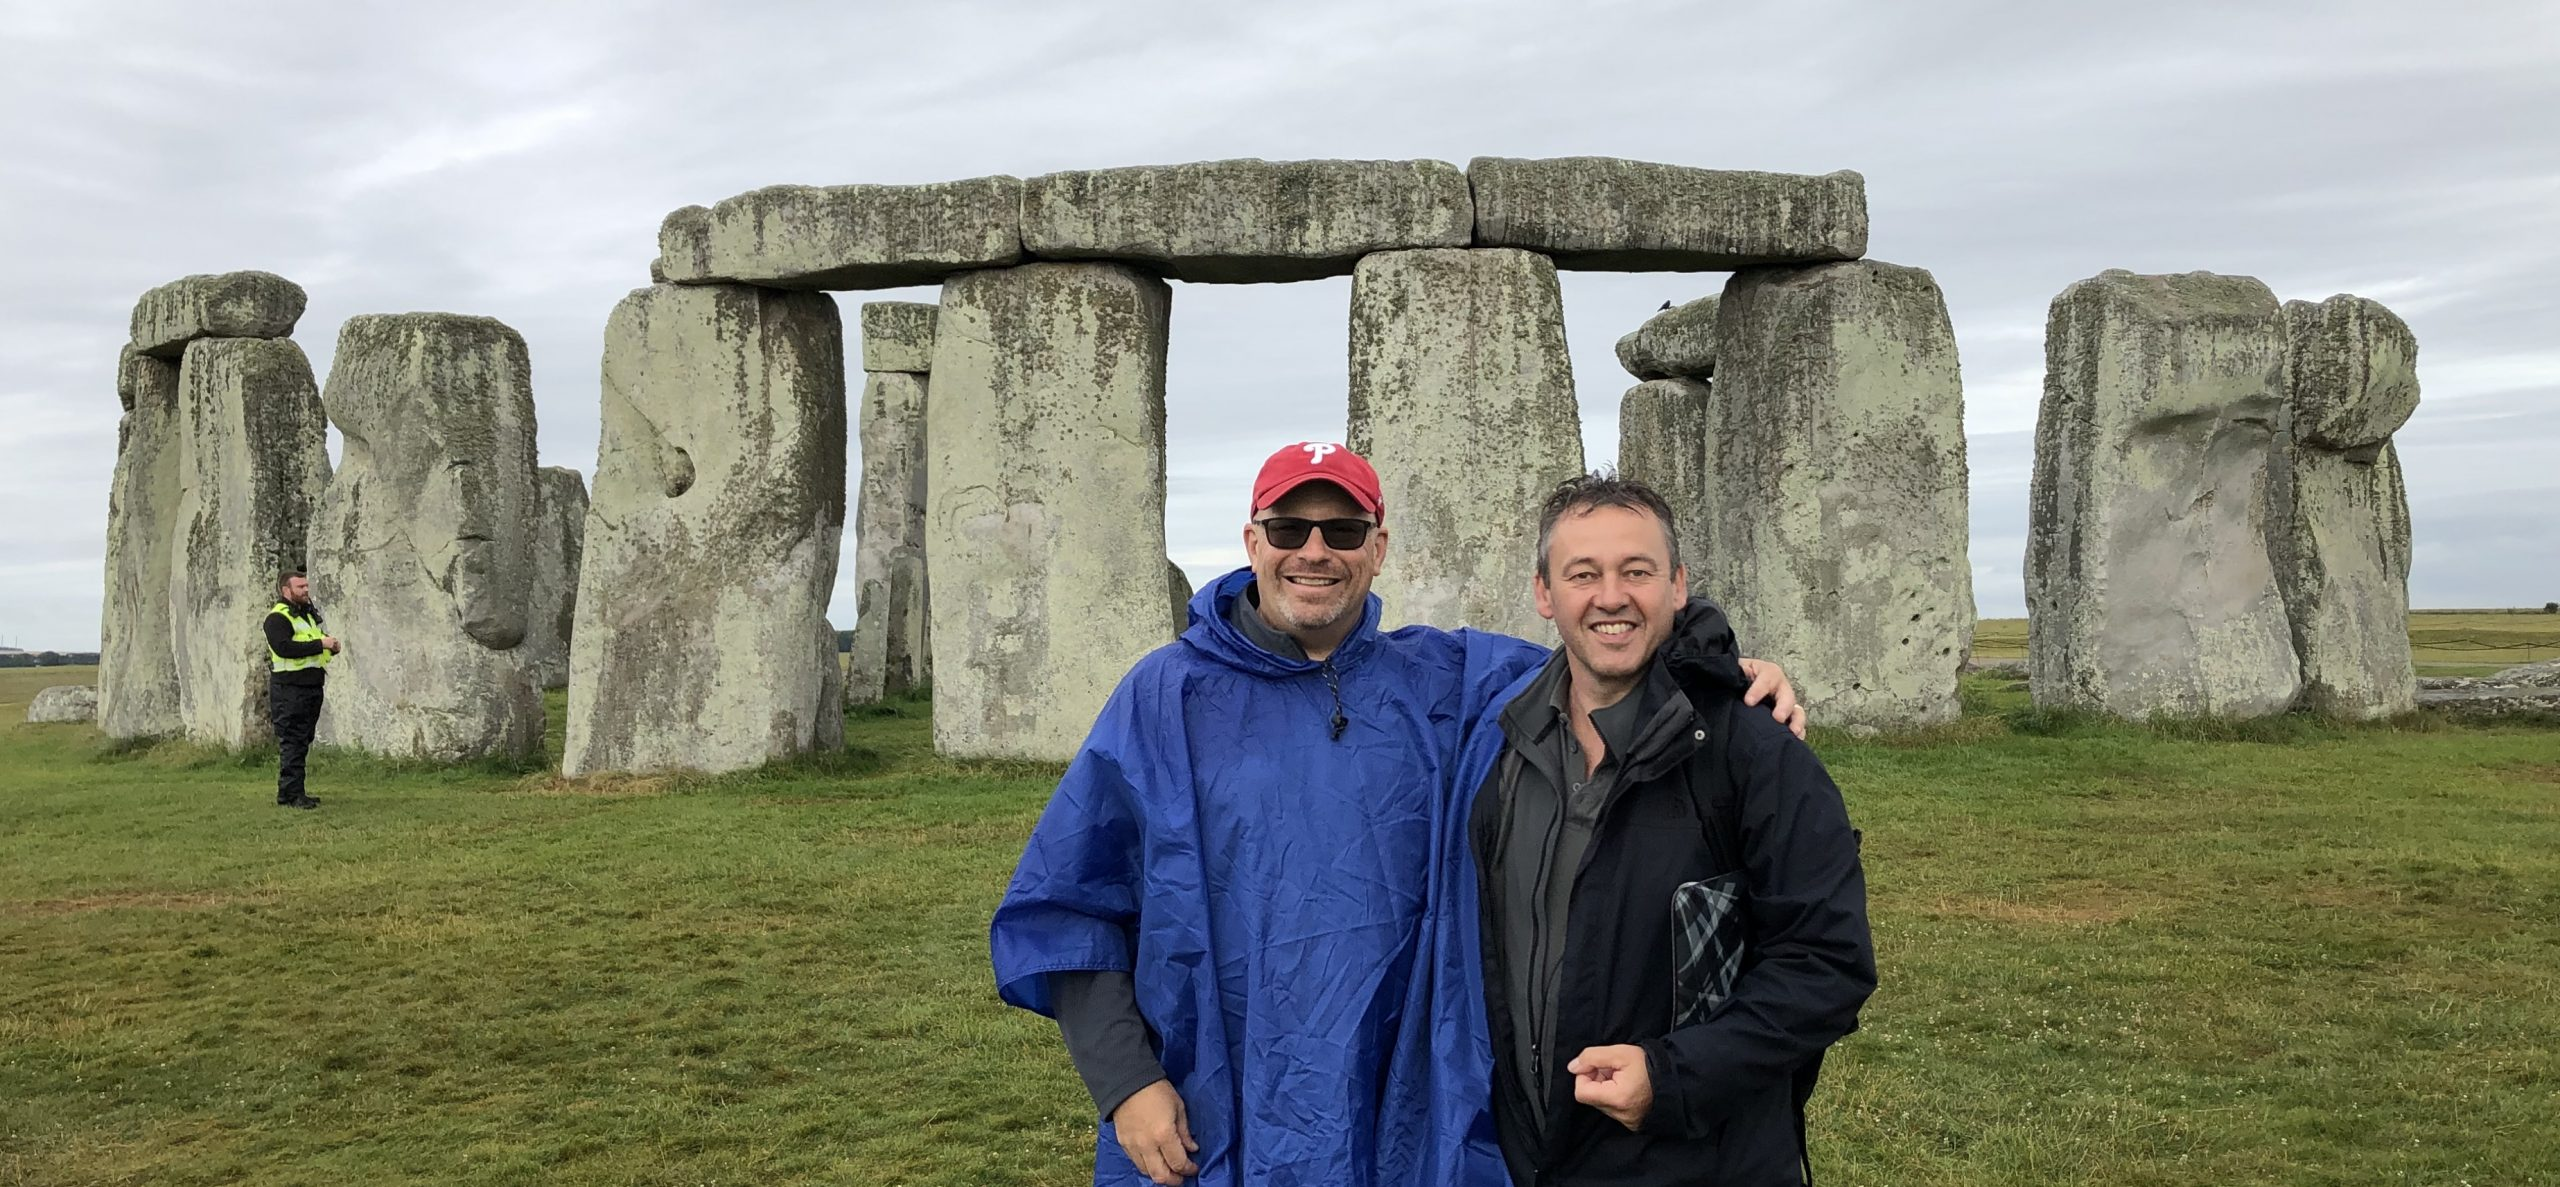 On a private tour to Stonehenge.